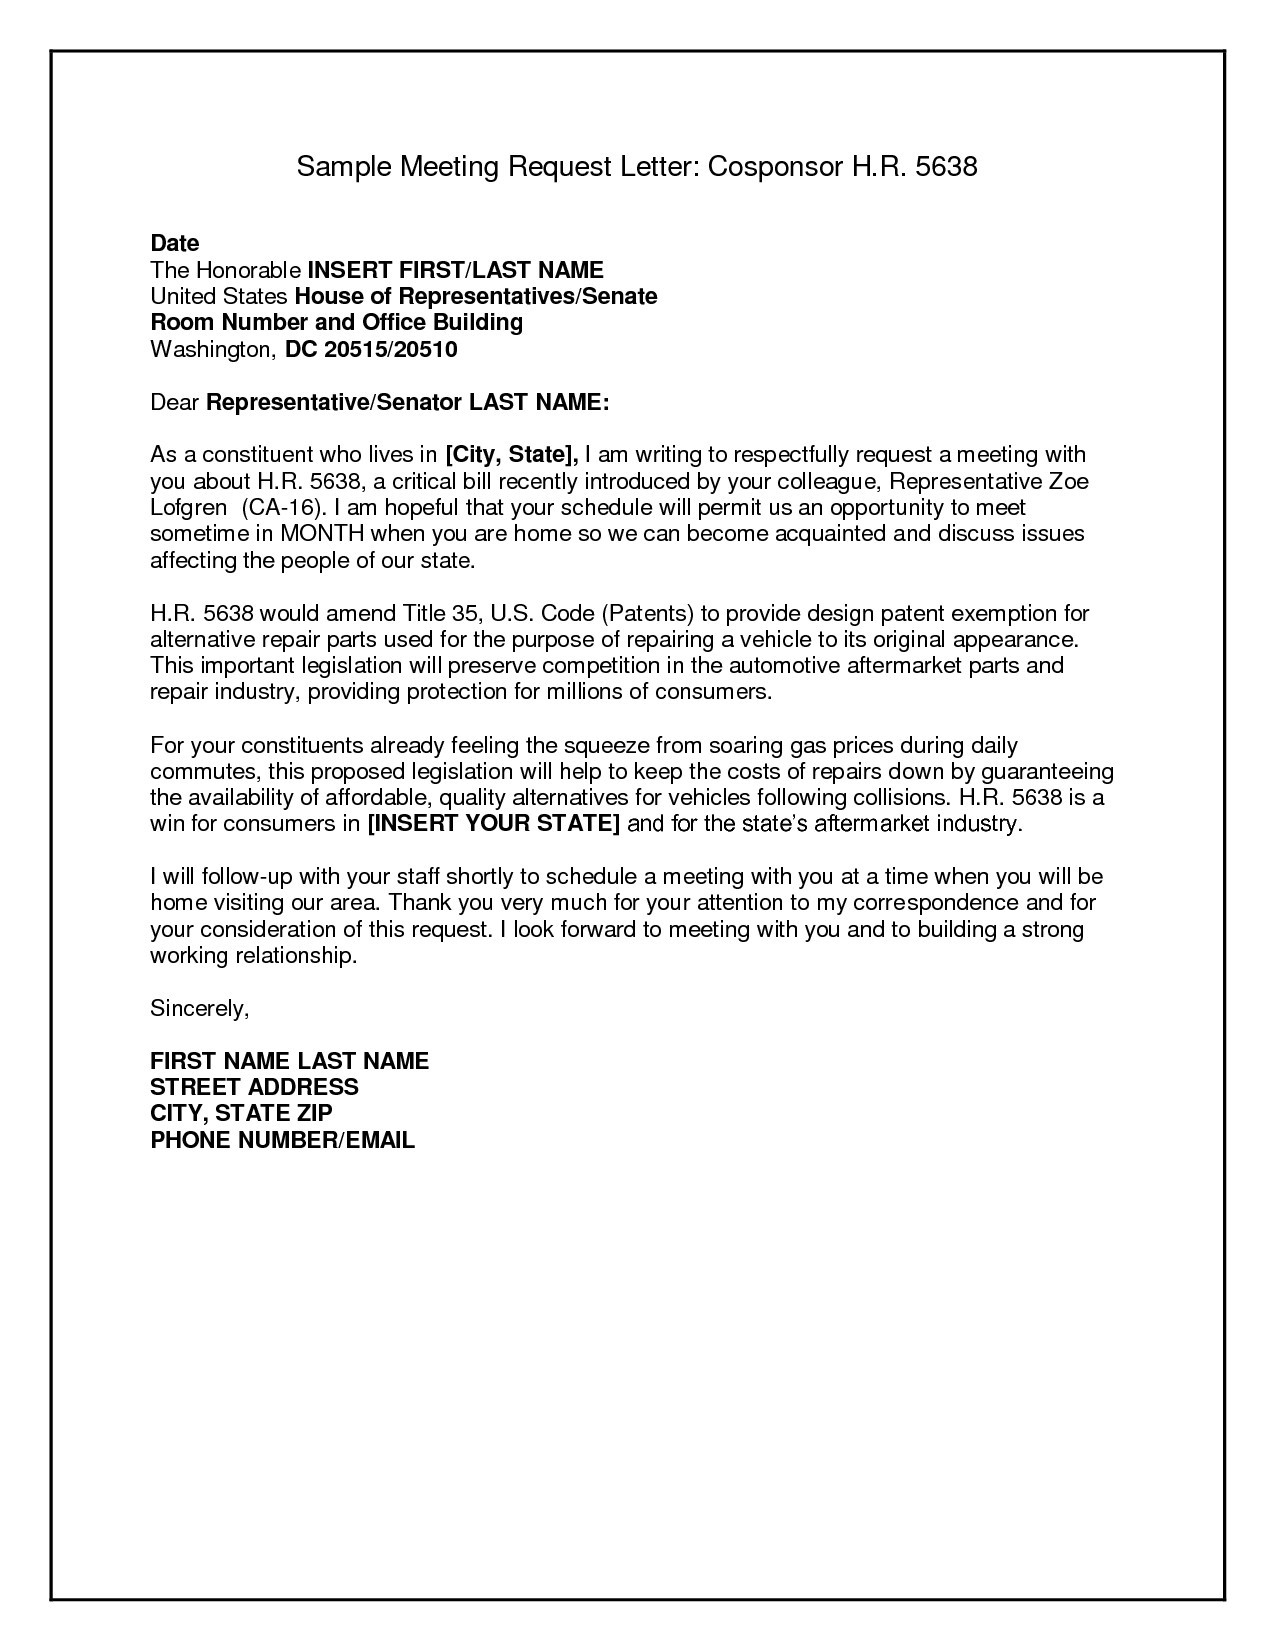 Price Offer Letter Template - Business Proposal Templates Refrence Business Sale Agreement New